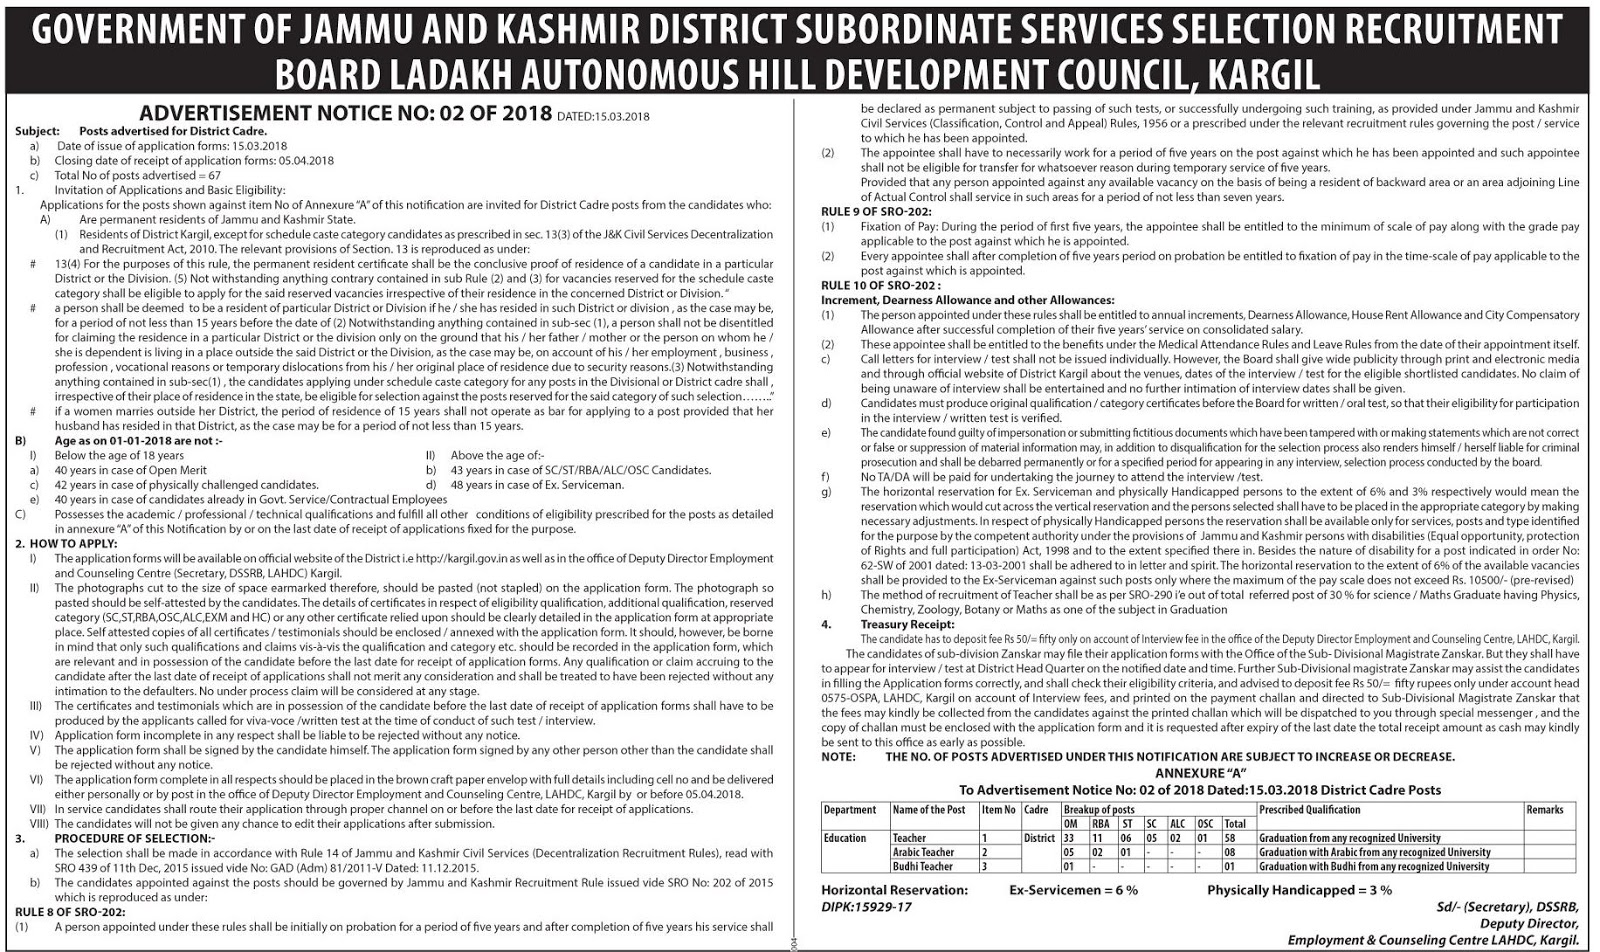 LAHDC Kargil Recruitment 2018 for 67 Teacher Posts